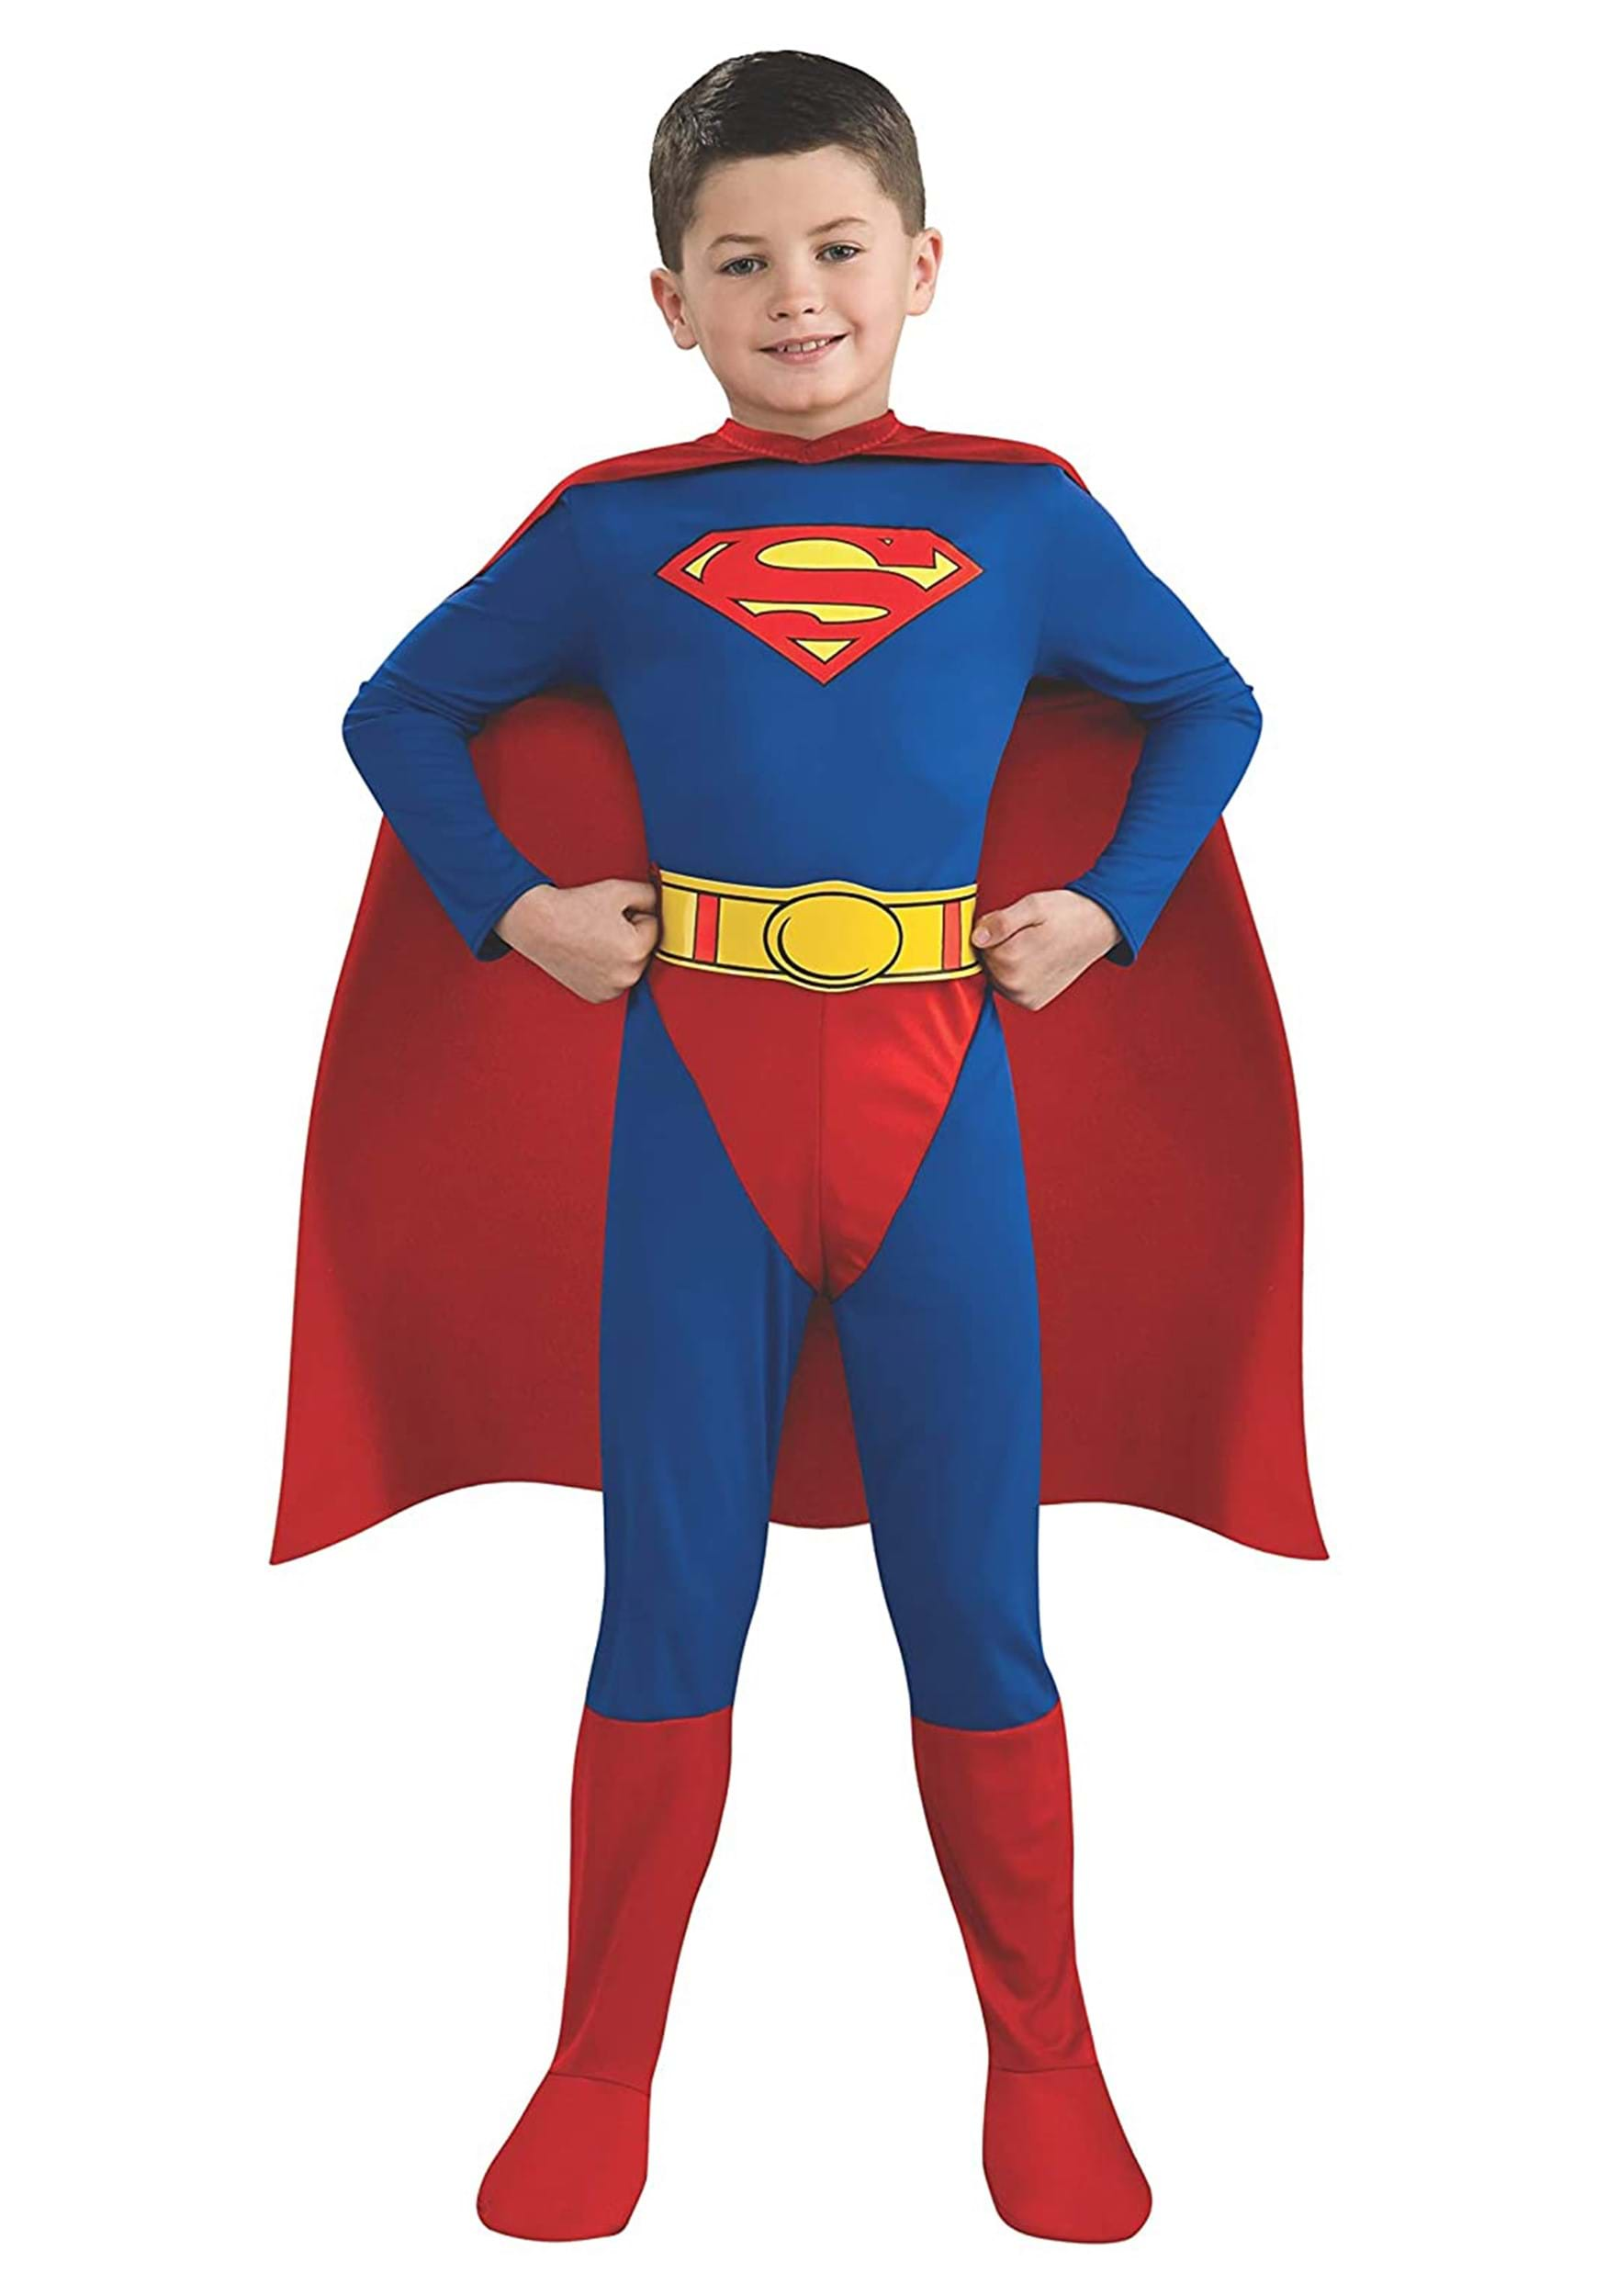 Childrens Superman Costume  sc 1 st  Halloween Costume & Childrens Superman Costume - Kids Superman Halloween Costumes